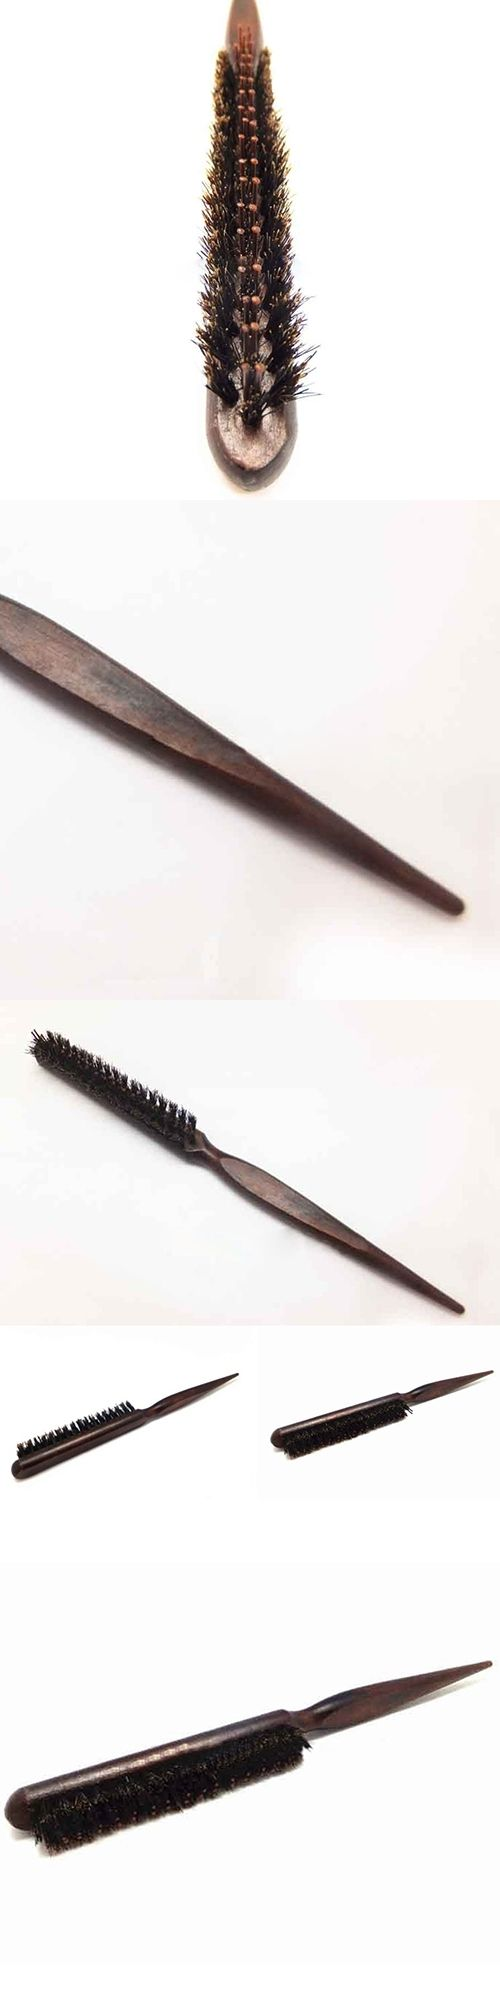 Pro Salon Backcombing Hair Up Volume Bristle Teasing Brush Styling Comb Tool